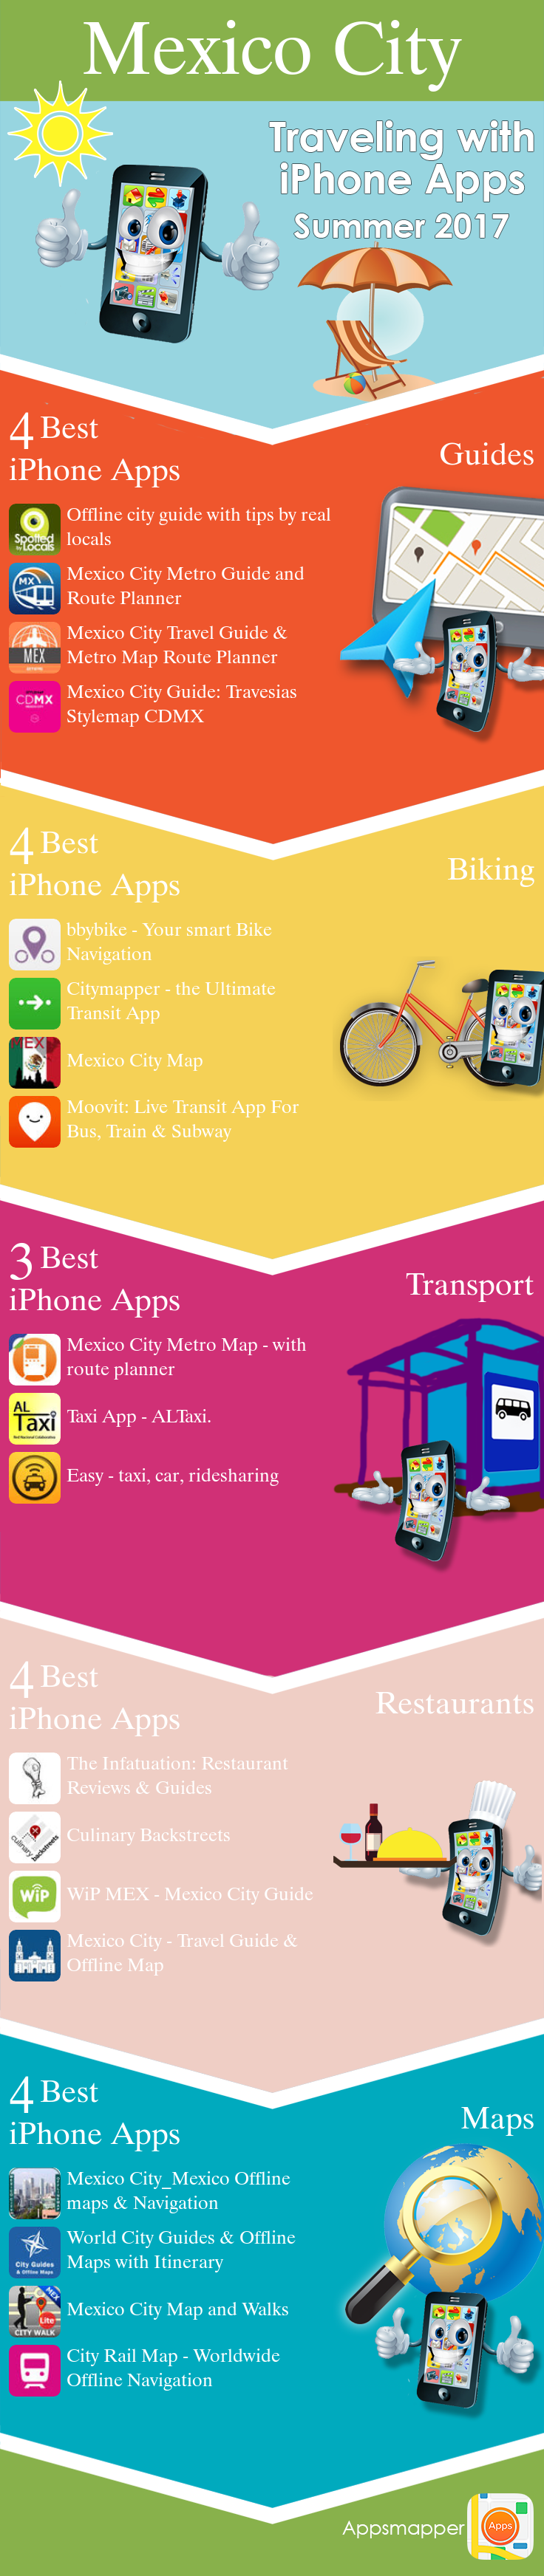 Mexico City Iphone Apps Travel Guides Maps Transportation